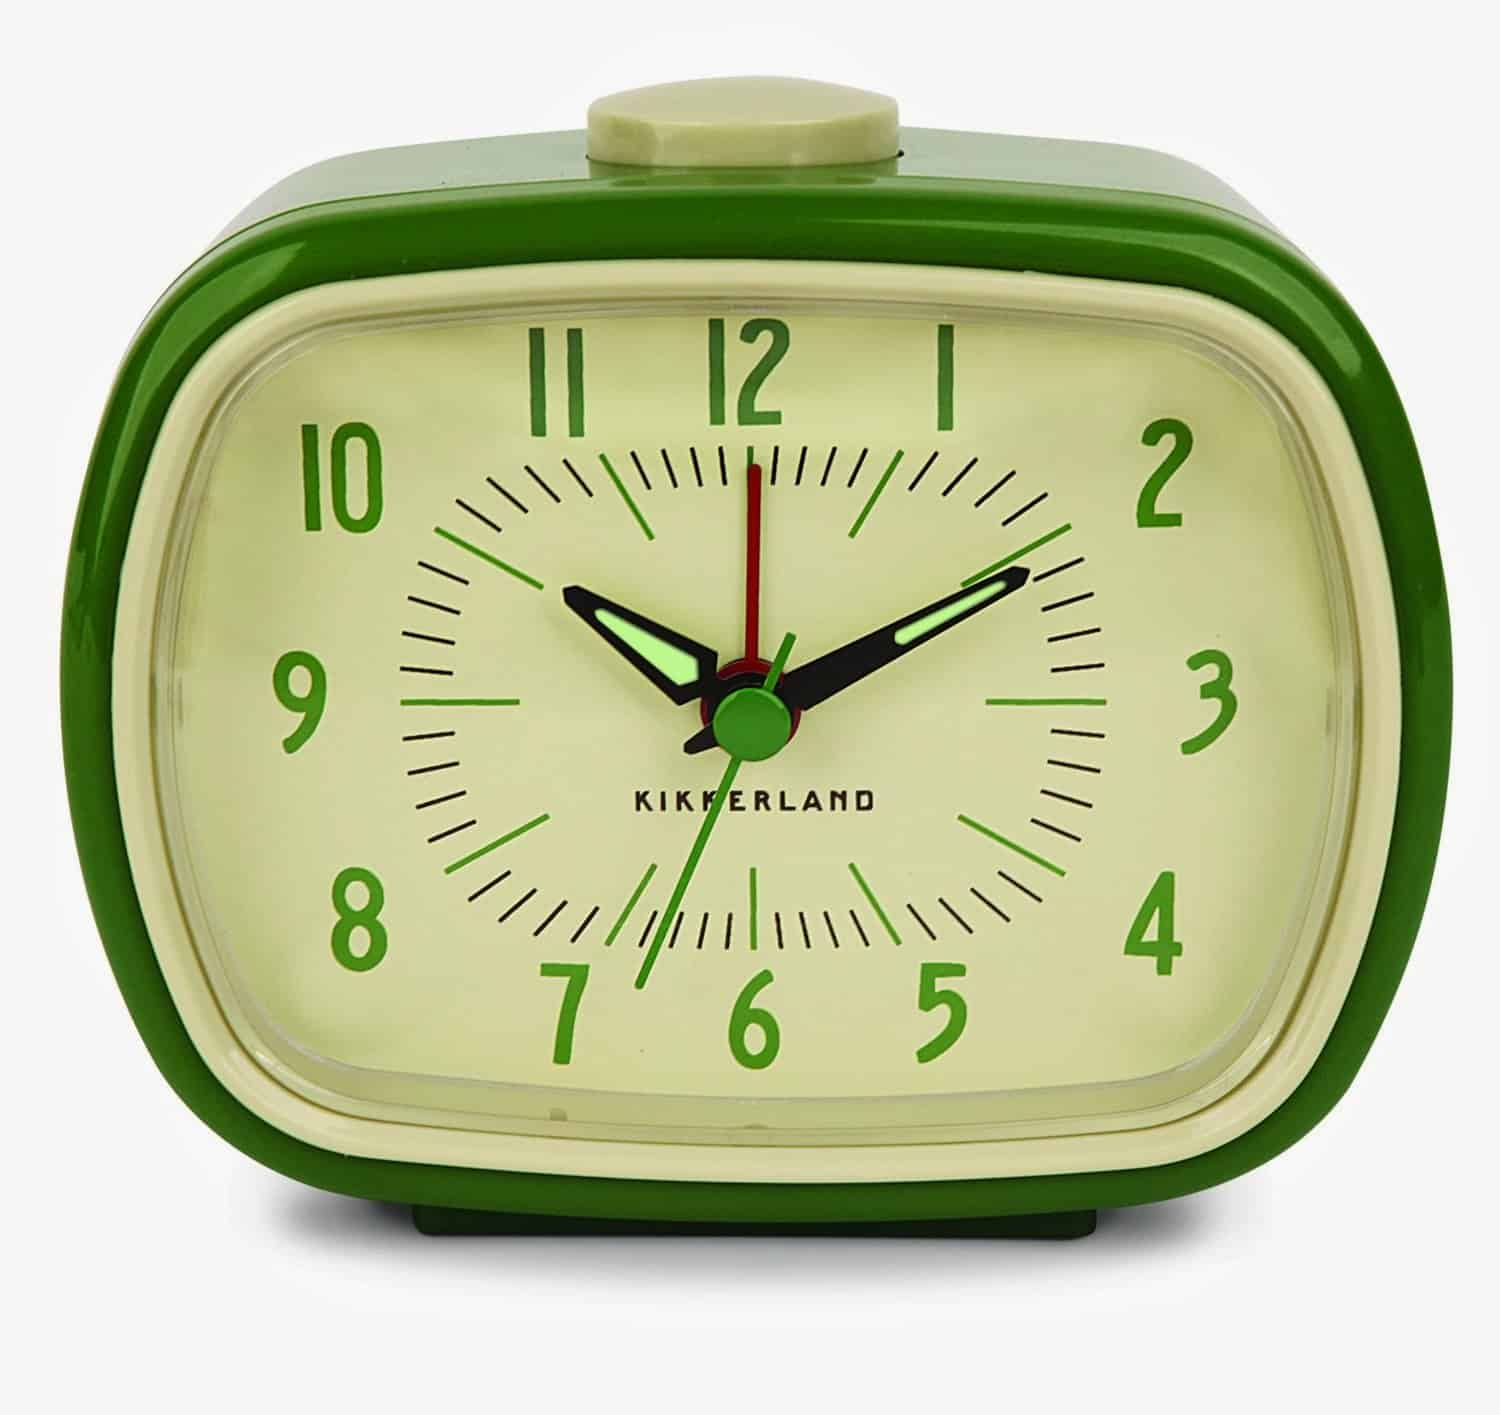 Kikkerland Retro Alarm Clock Green Cool Gift Idea for Old People